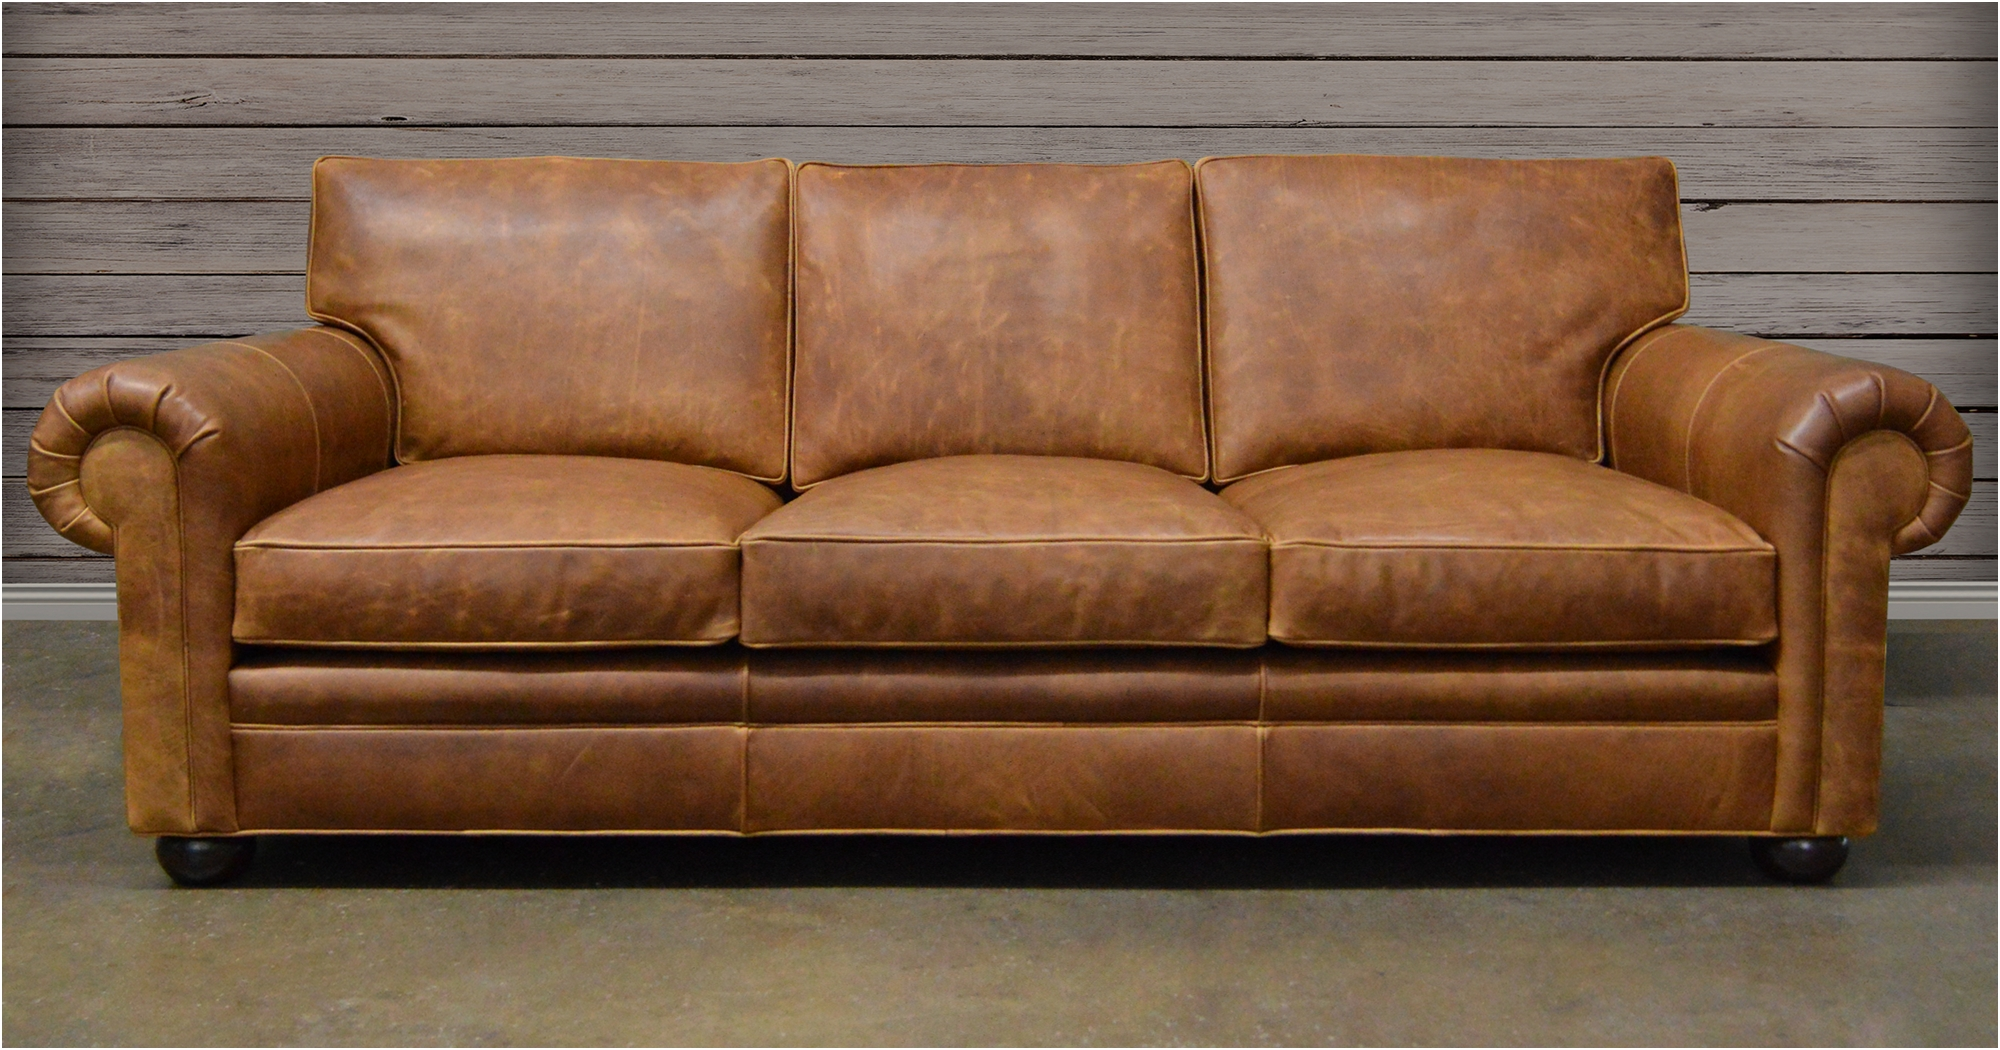 Sofa Custom Leather Canada Cushions Sectional Toronto Sofas Made throughout Made in North Carolina Sectional Sofas (Image 7 of 10)